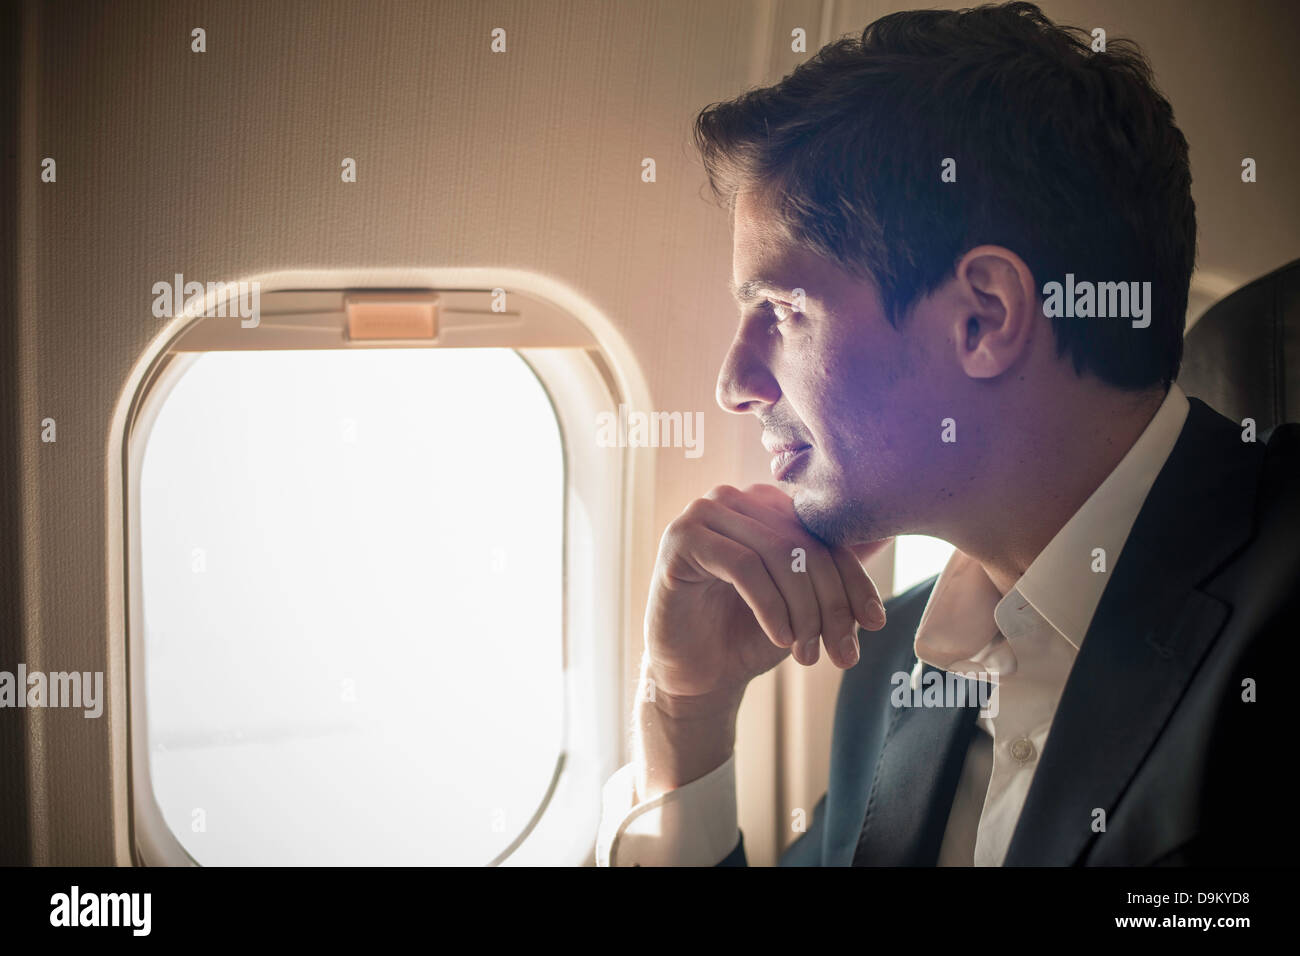 Male passenger looking out of aeroplane window - Stock Image